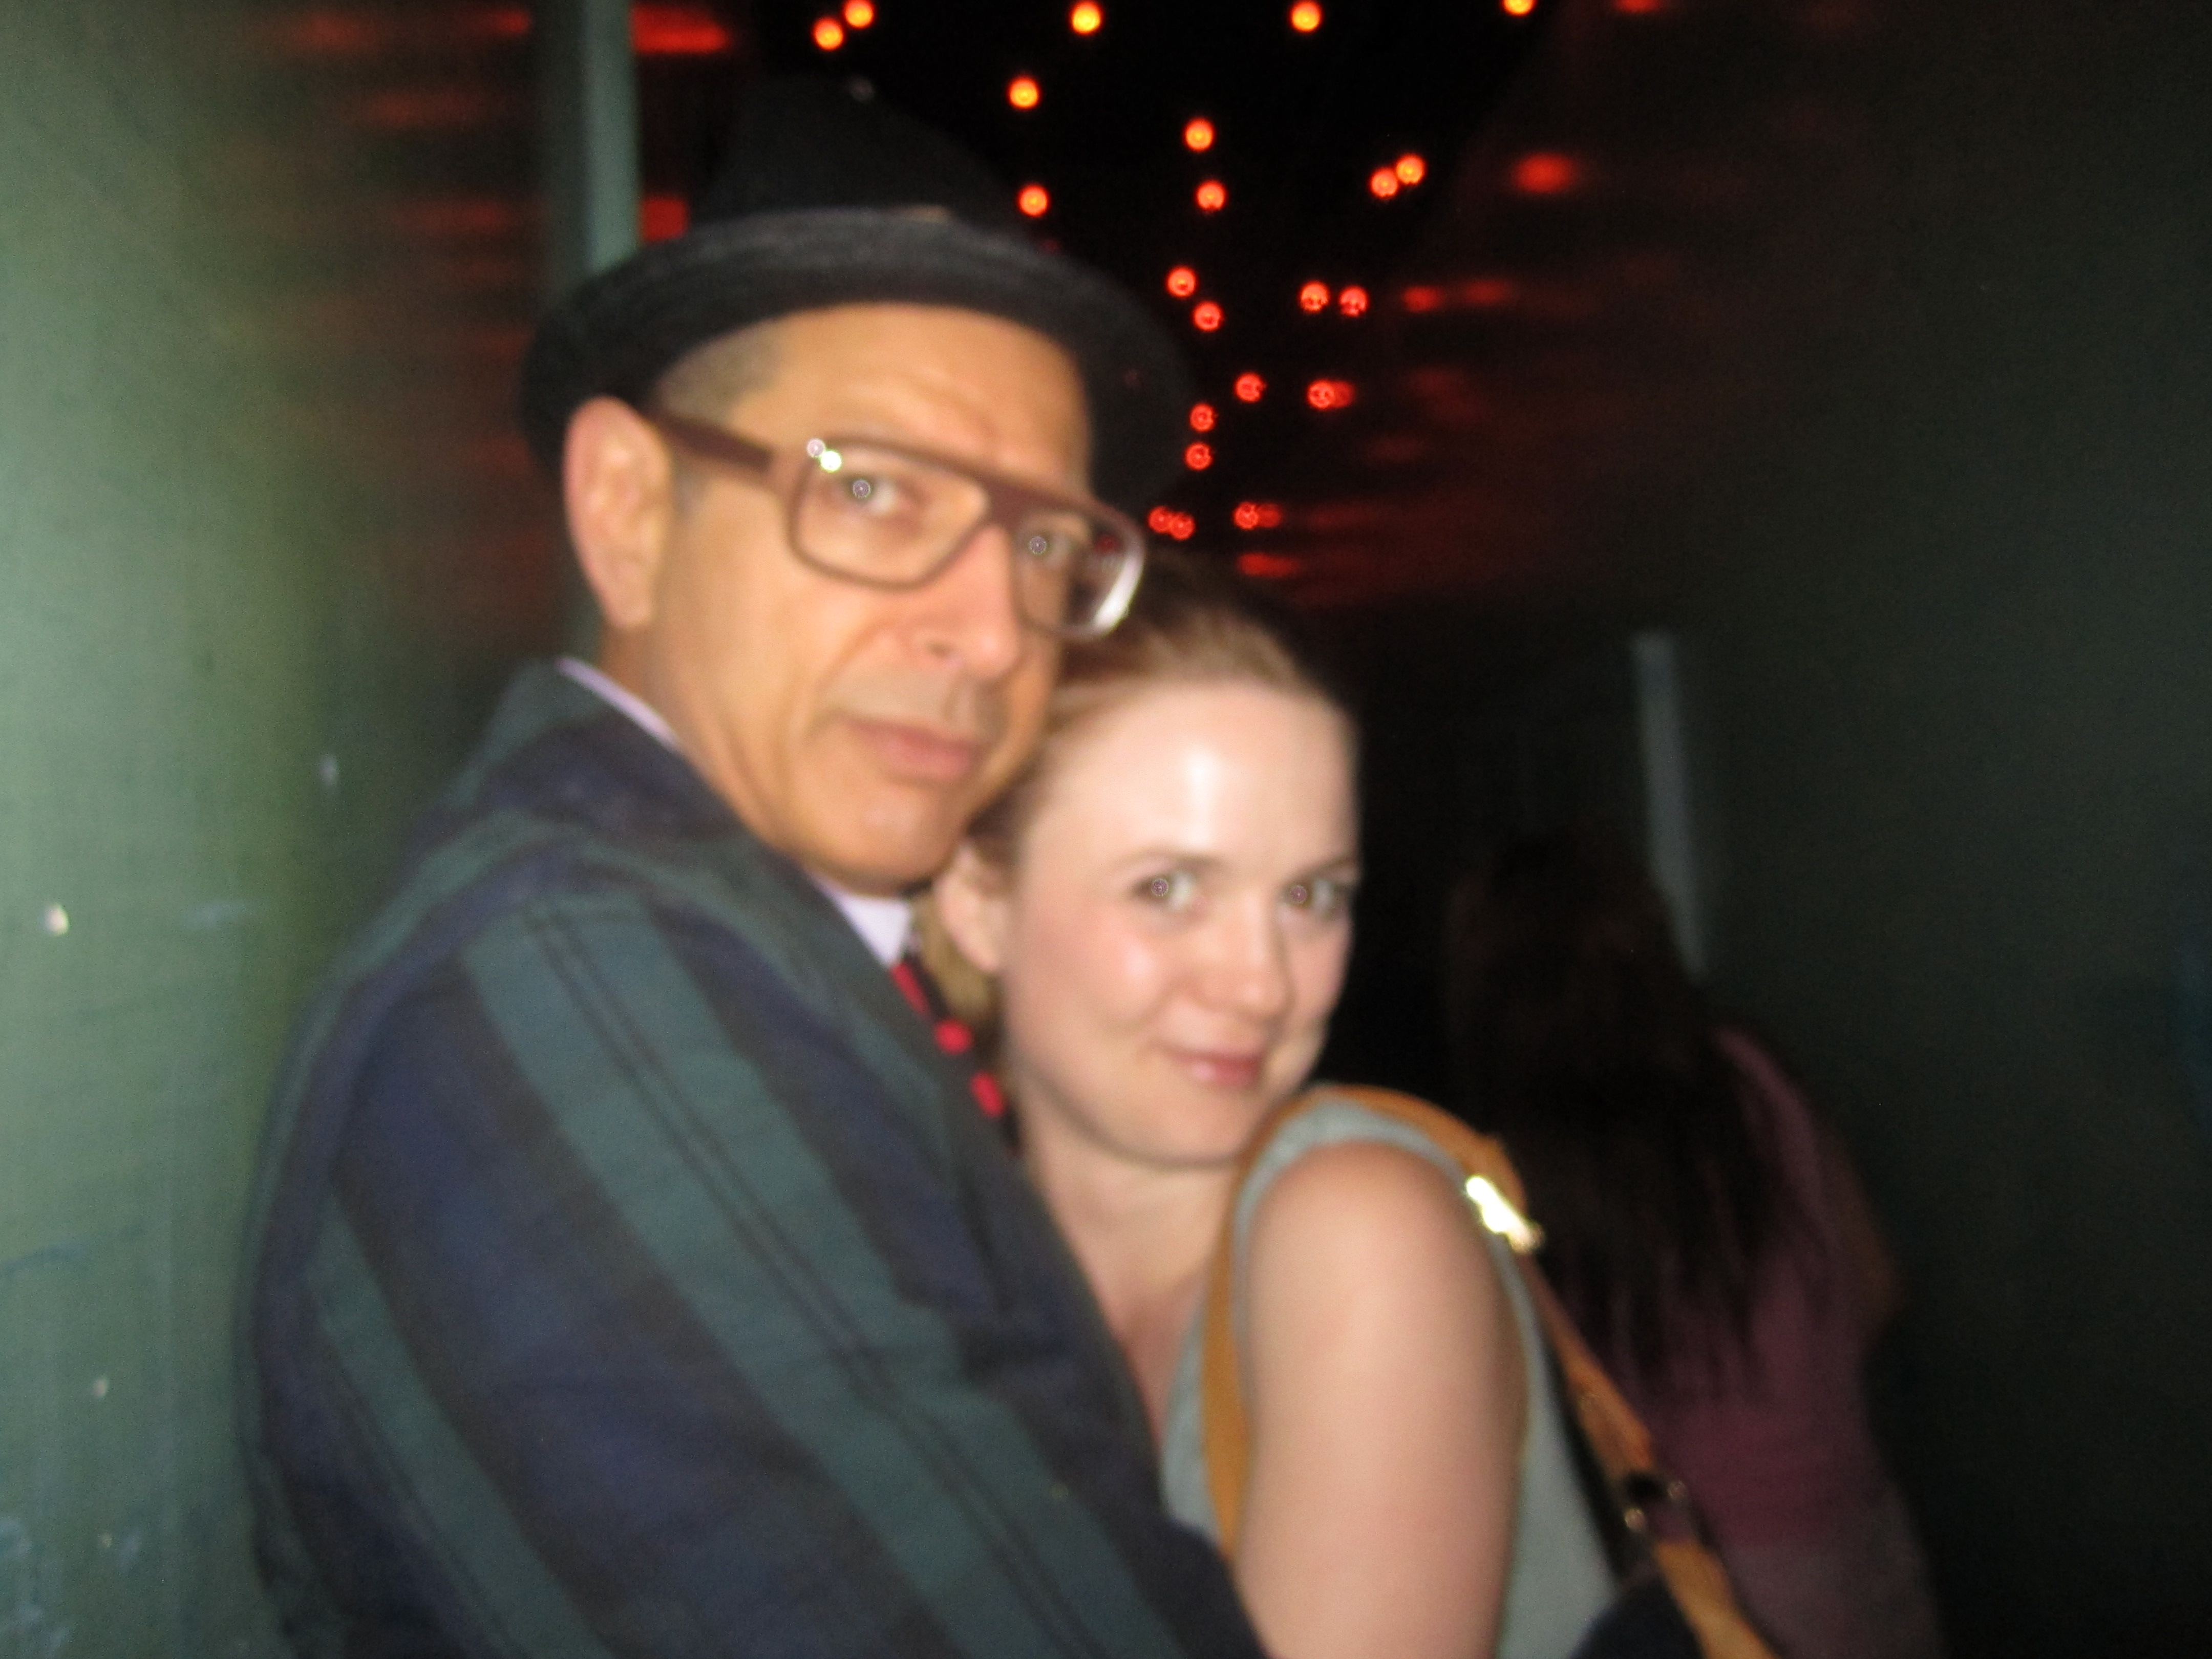 After a sing-song with the one and only Jeff Goldblum